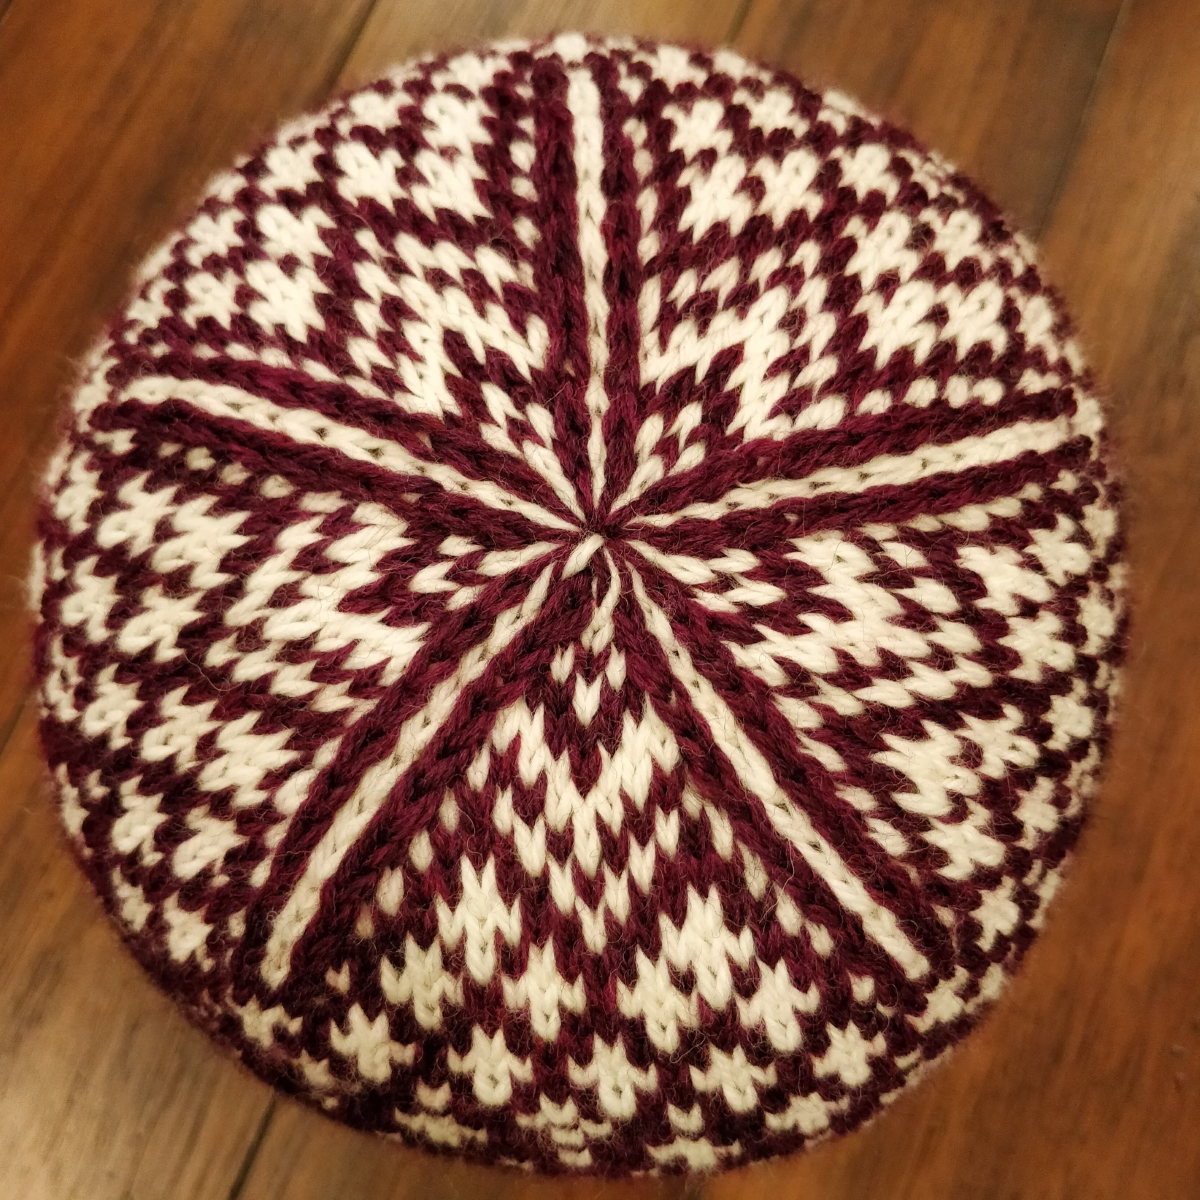 The top of a red and white hat. The stitches and colours form a star shape.